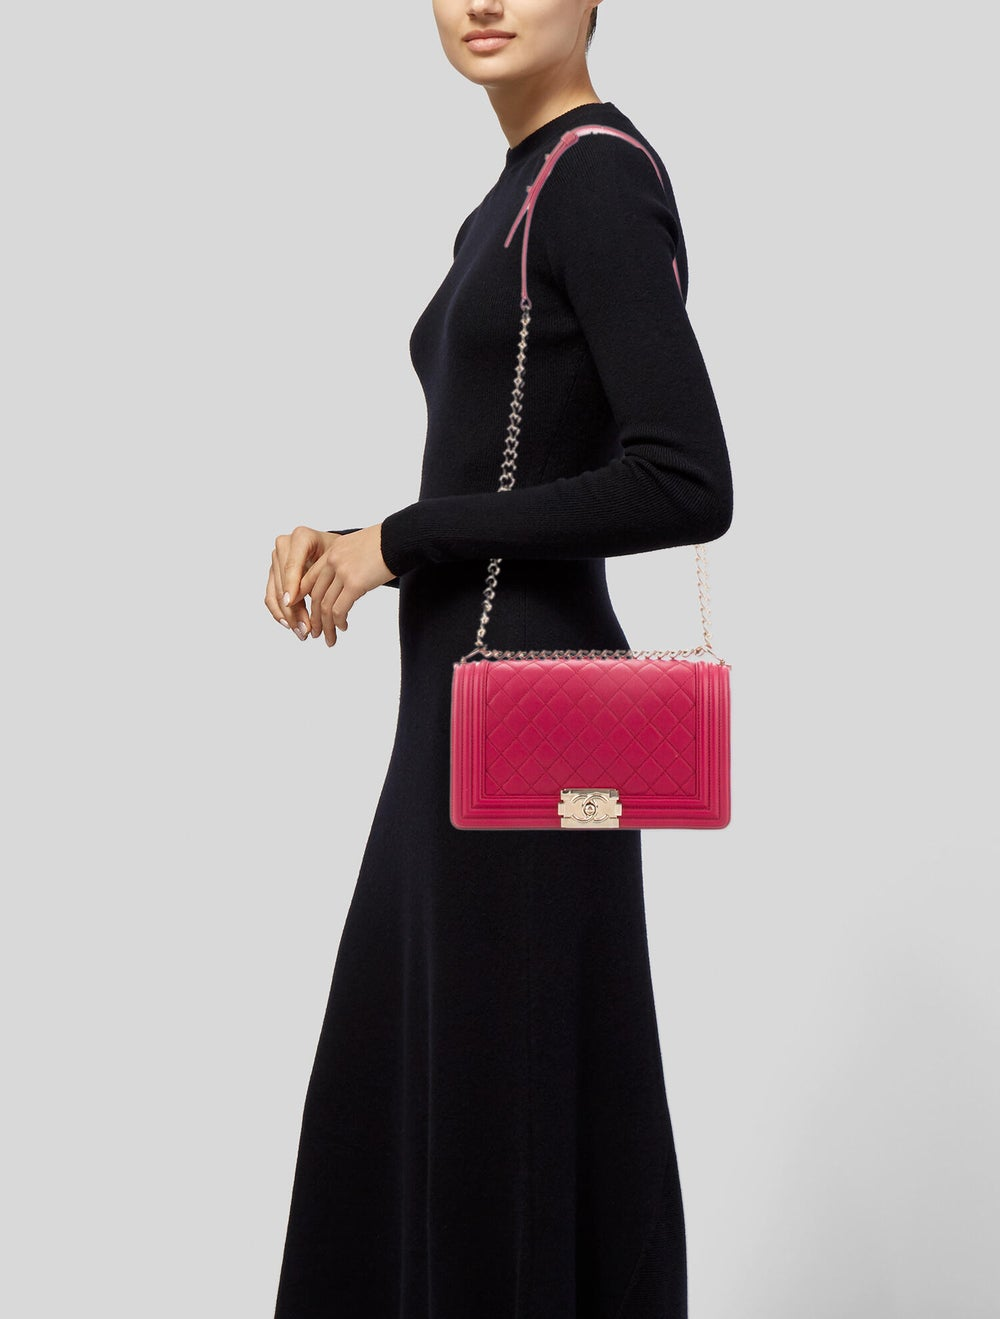 Chanel Quilted Medium Boy Bag Pink - image 2